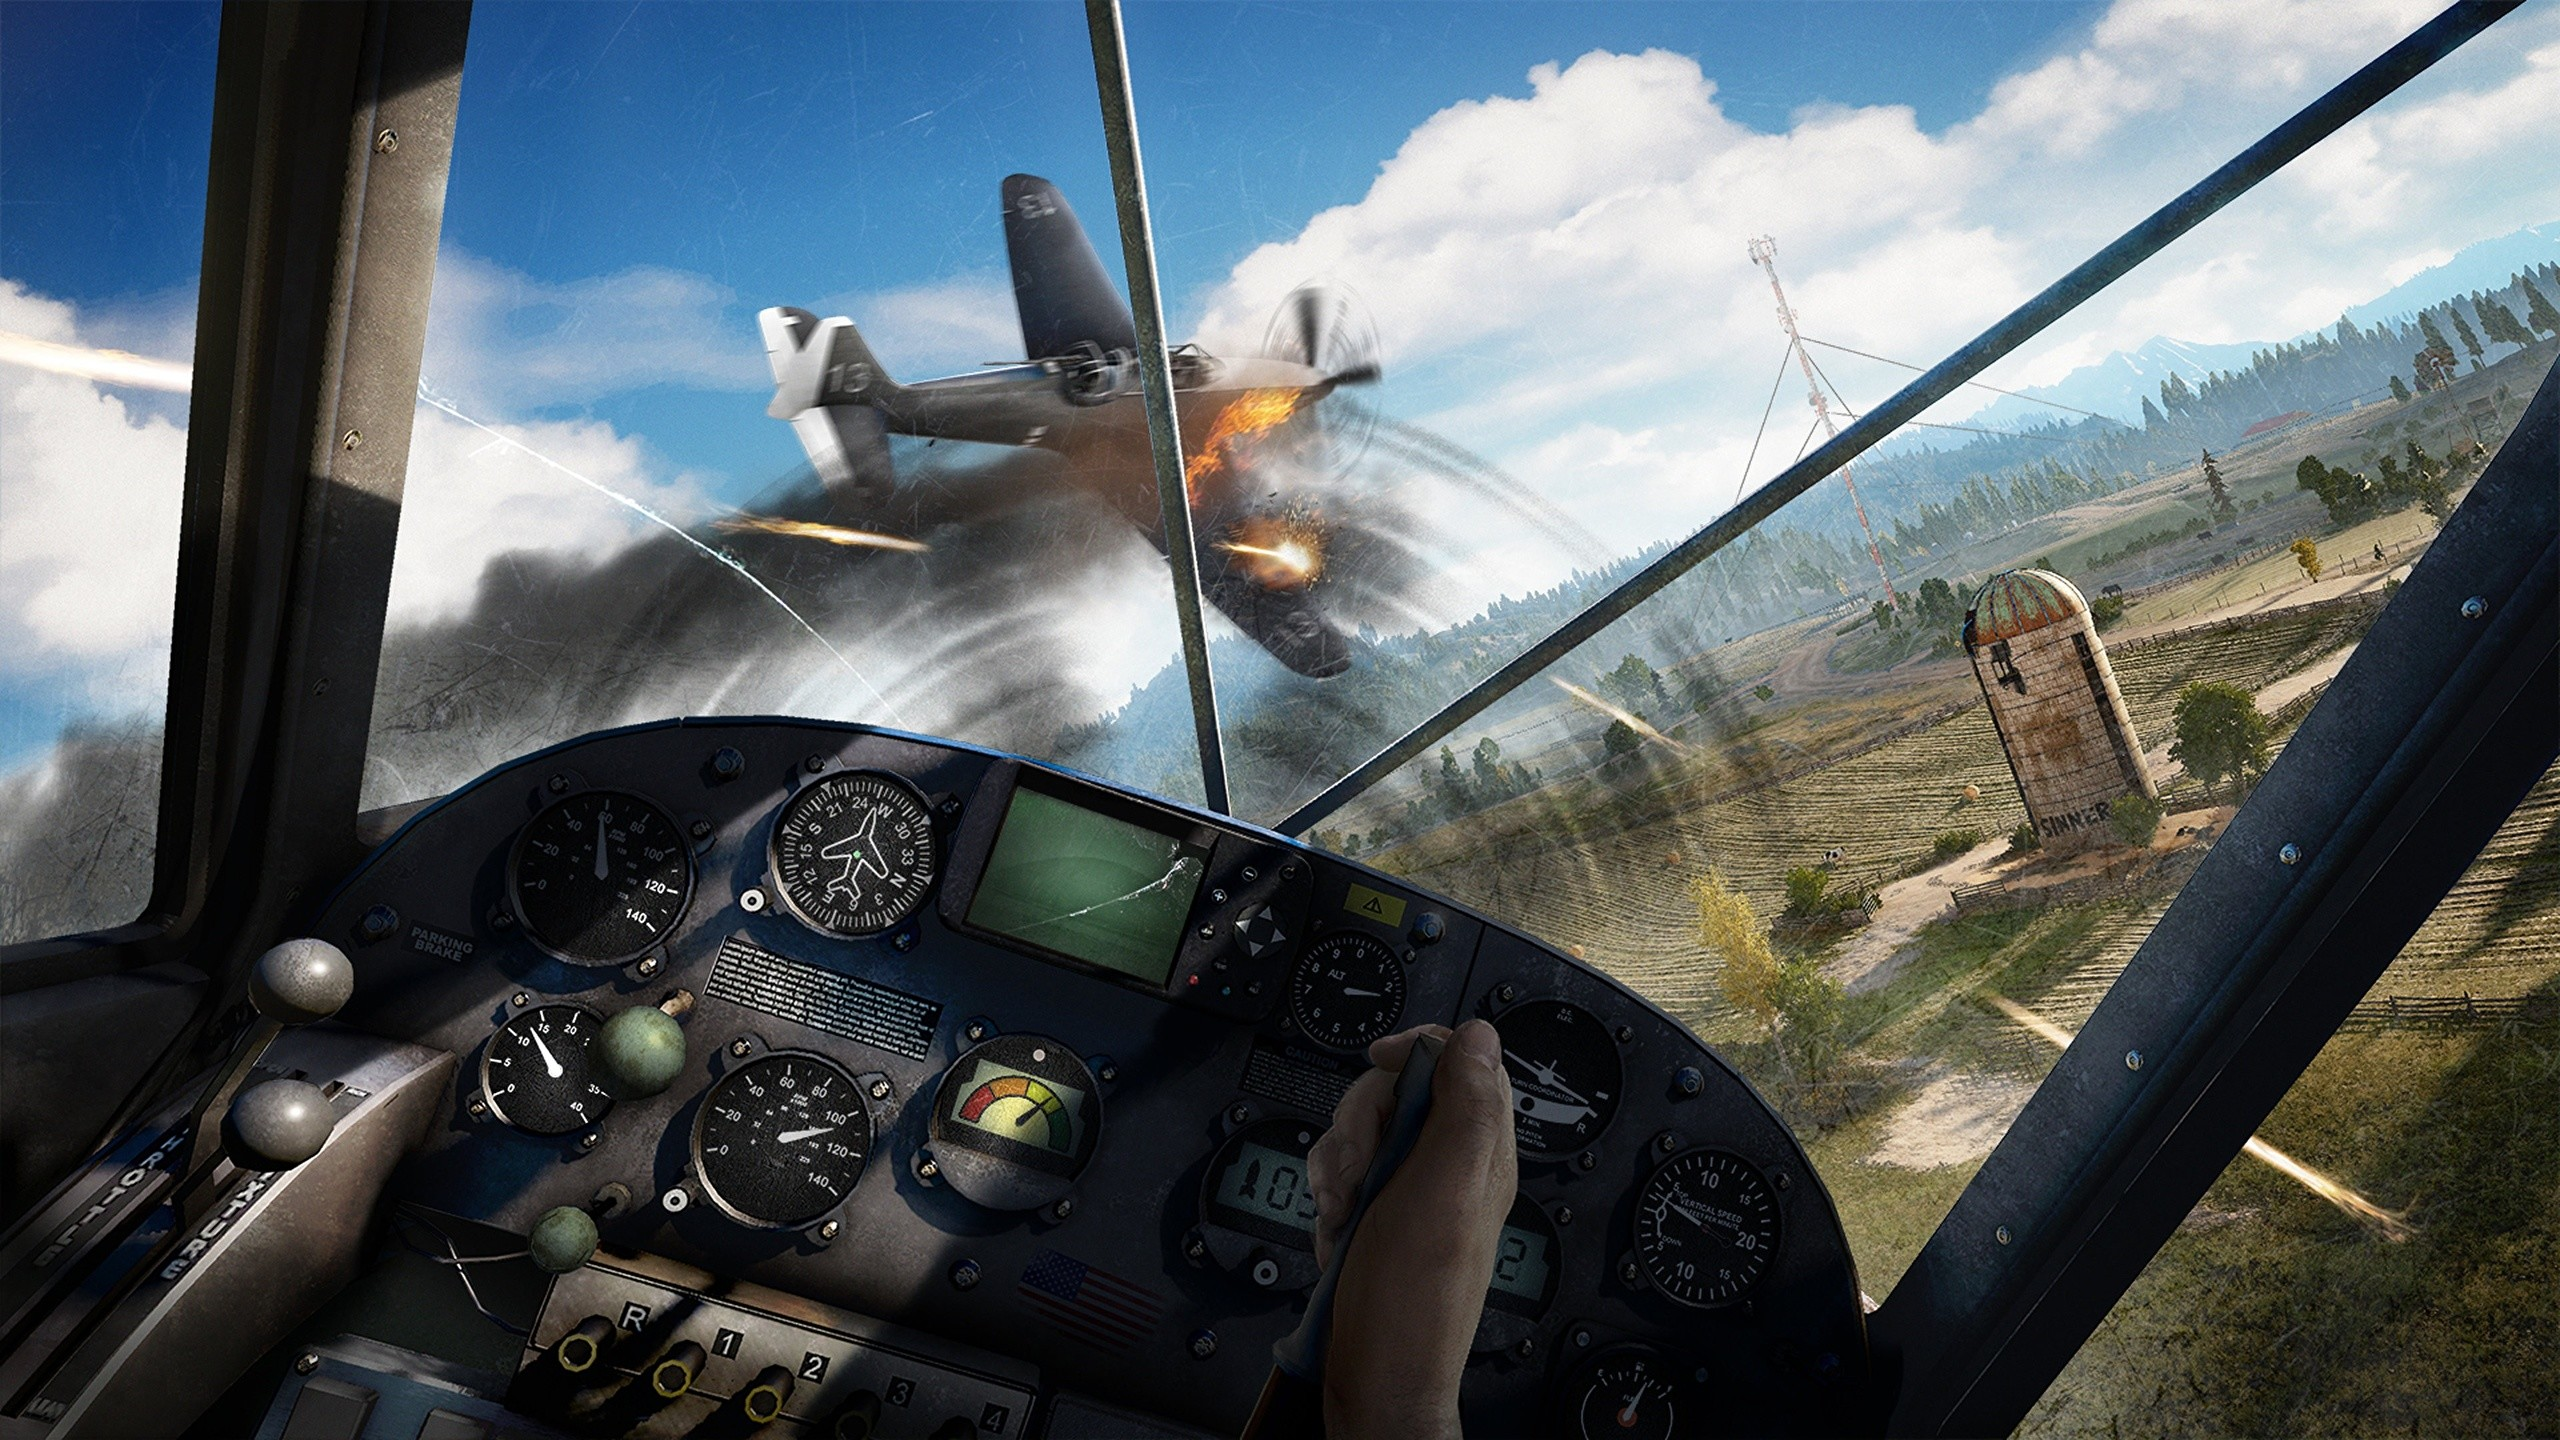 2560x1440 Pictures Far Cry 5 Airplane Cockpit Games Flight